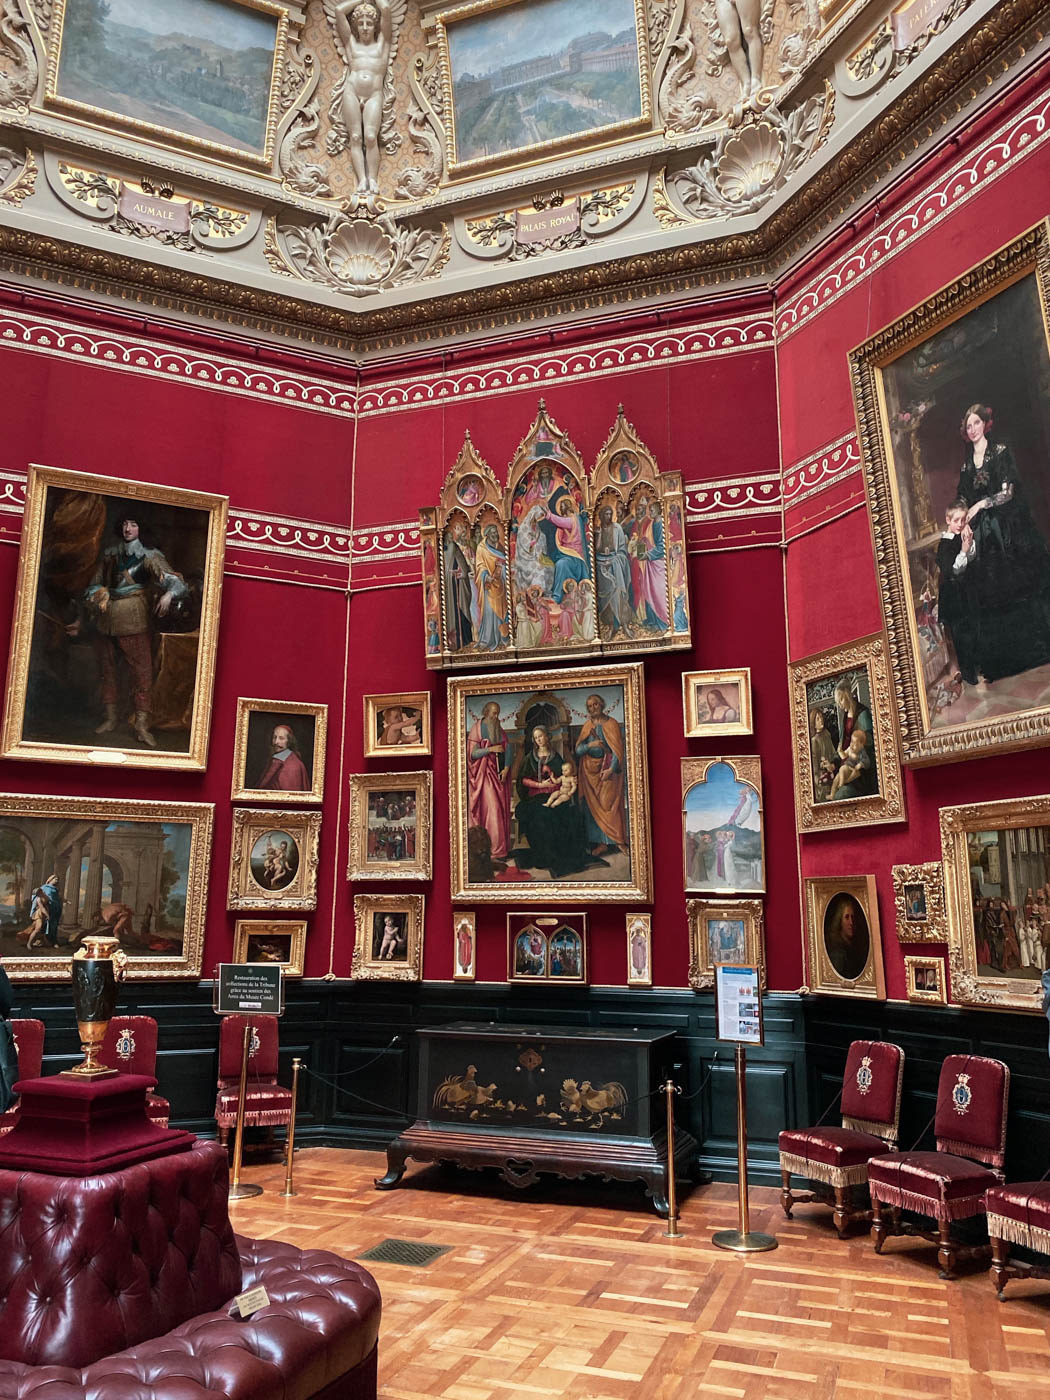 une-bonne-maison-chantilly-castle-french-chateau-paintings-gallery